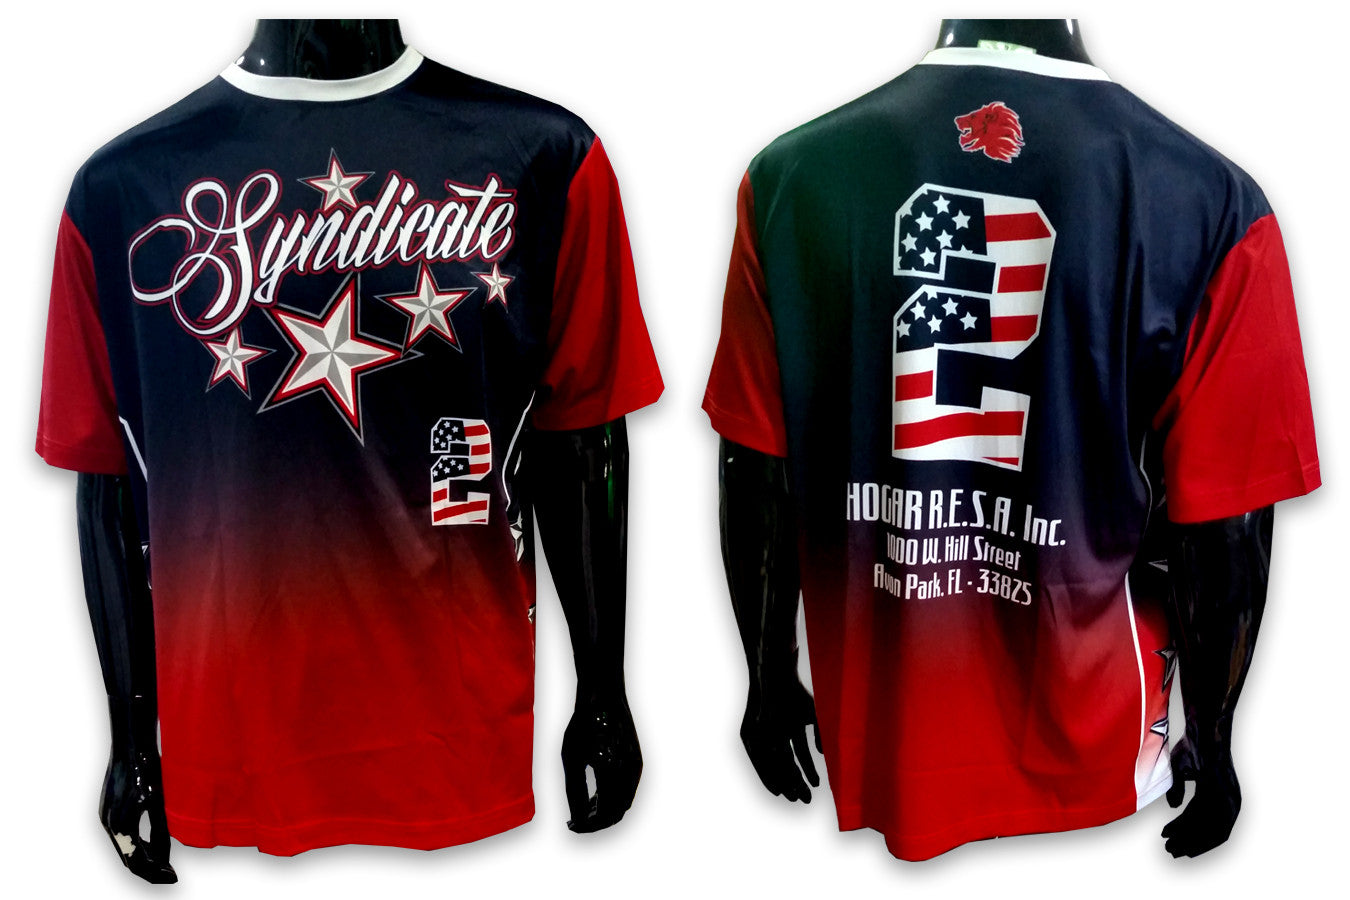 364dcbd6f232 Syndicate - Custom Full-Dye Jersey - Dirty Sports Wear